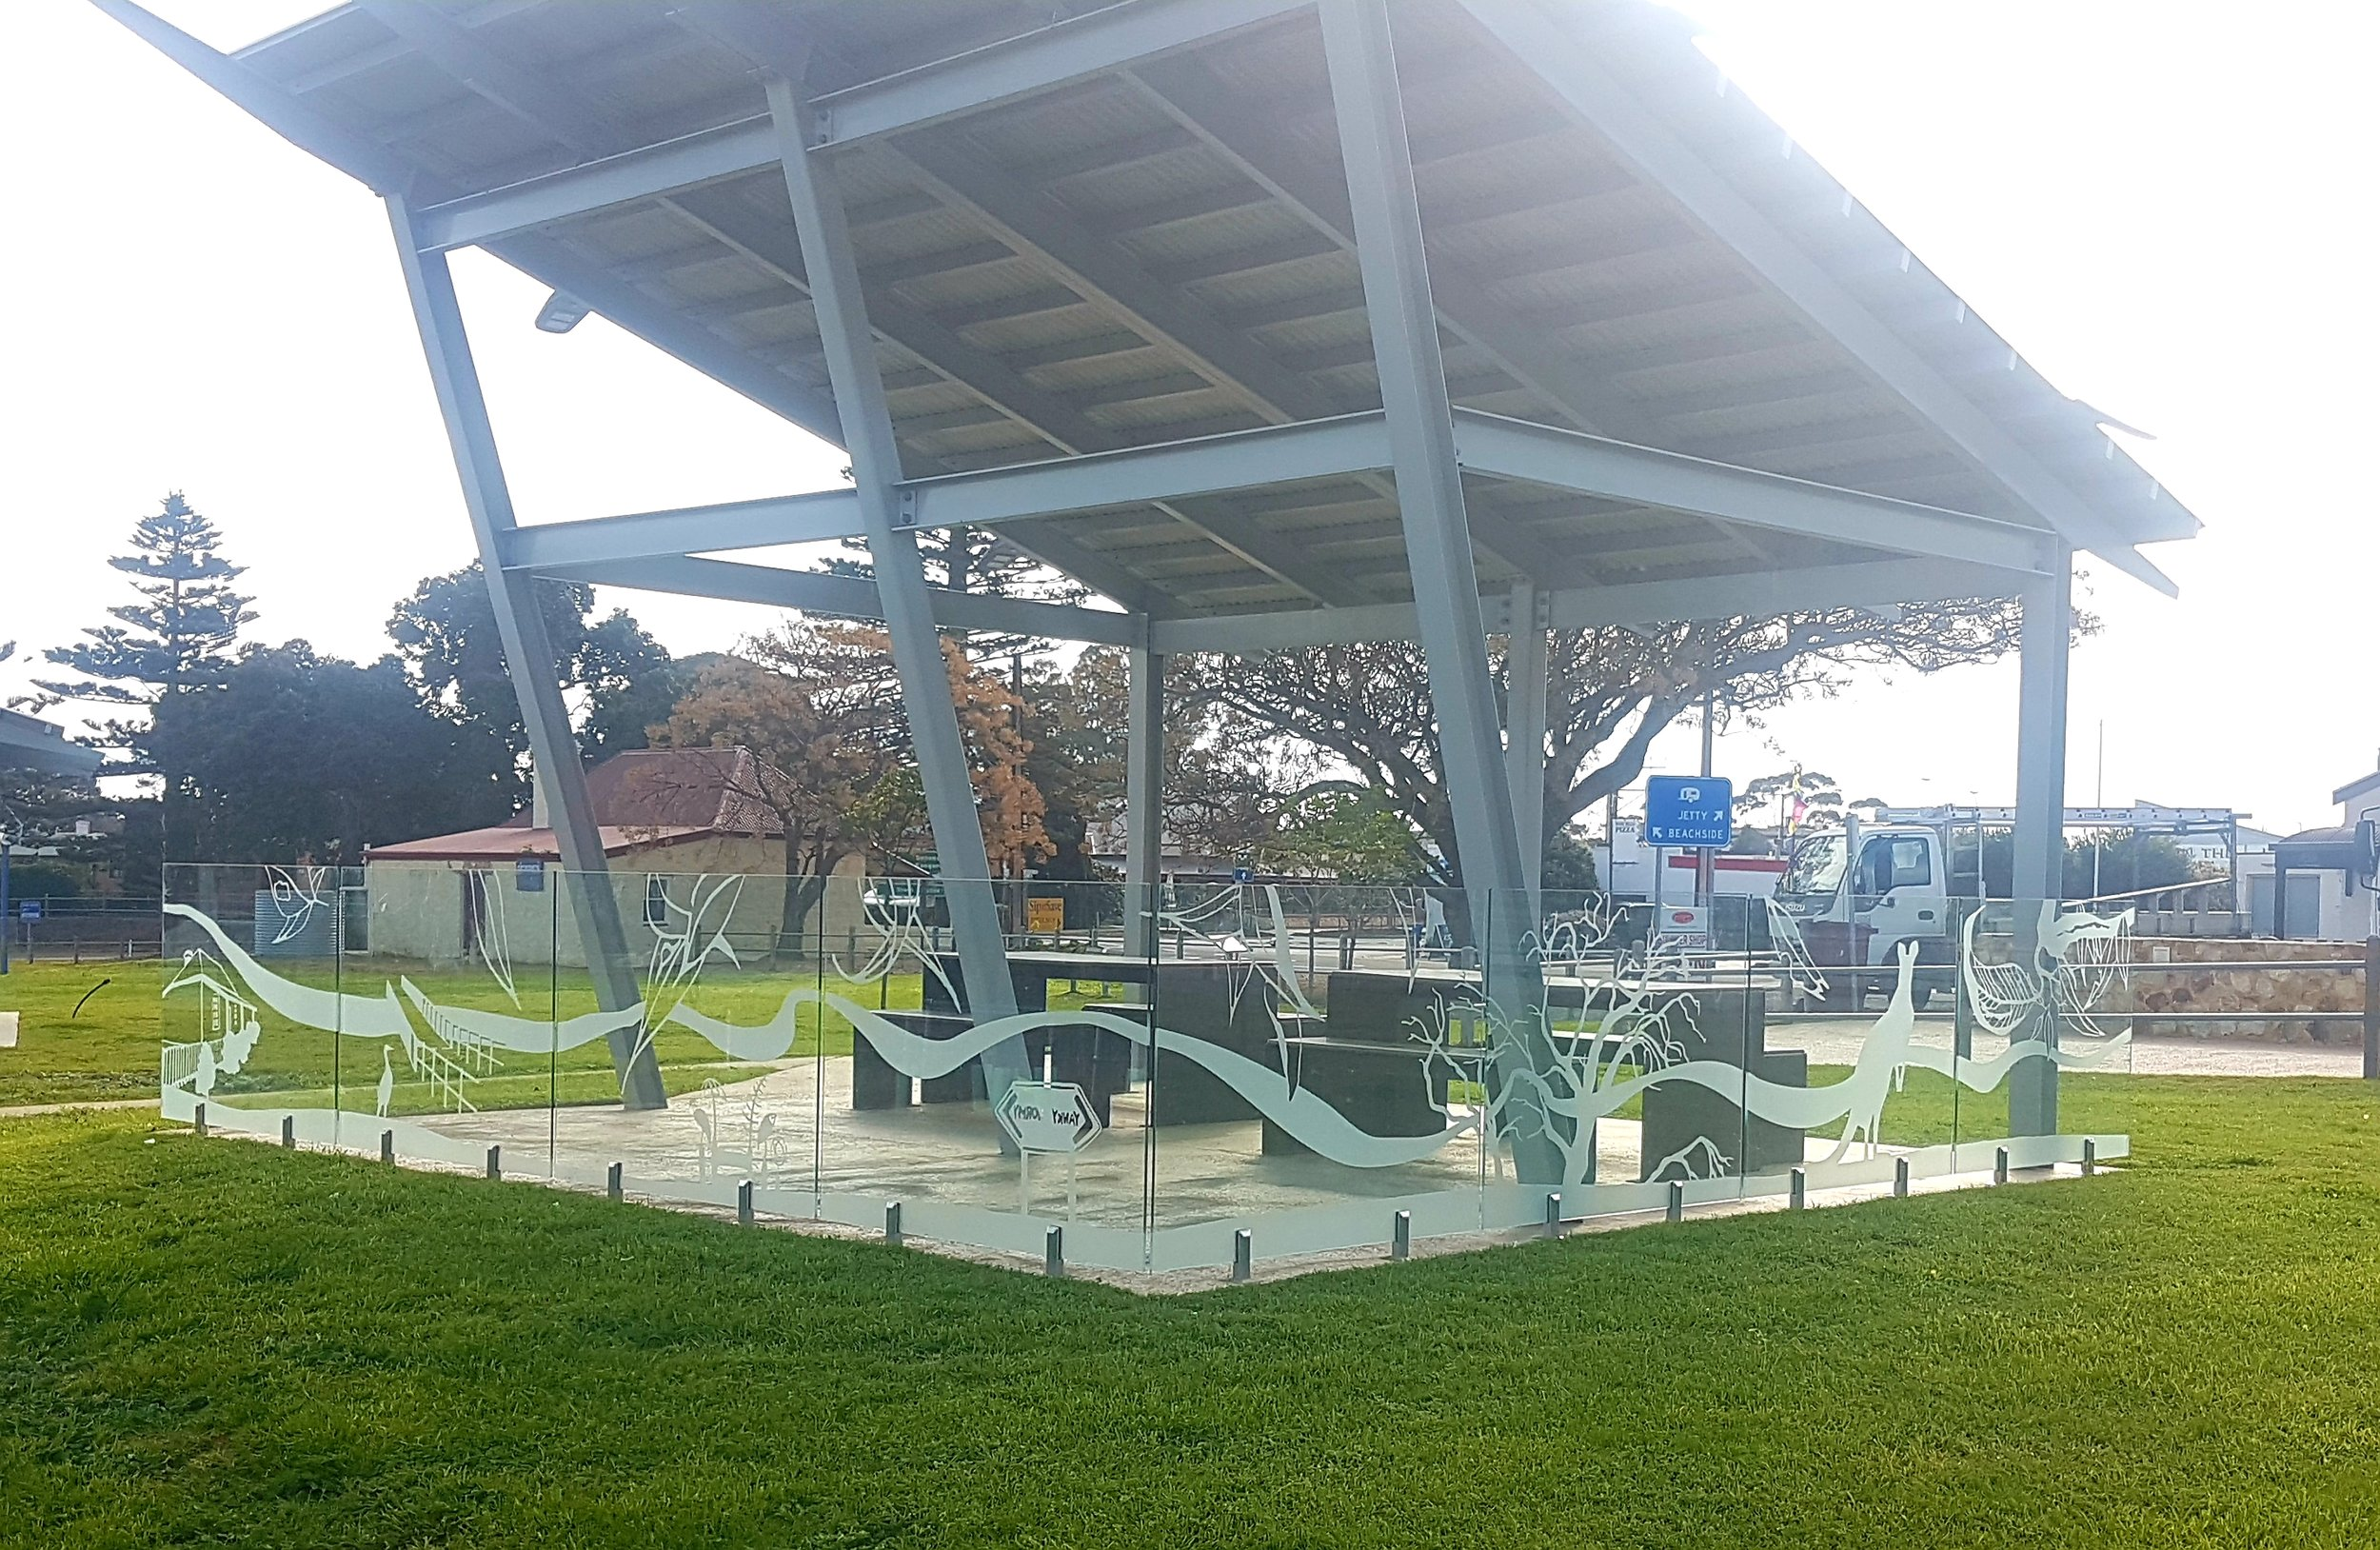 Commissioned by the District Council of Yankalilla & City of Victor Harbor